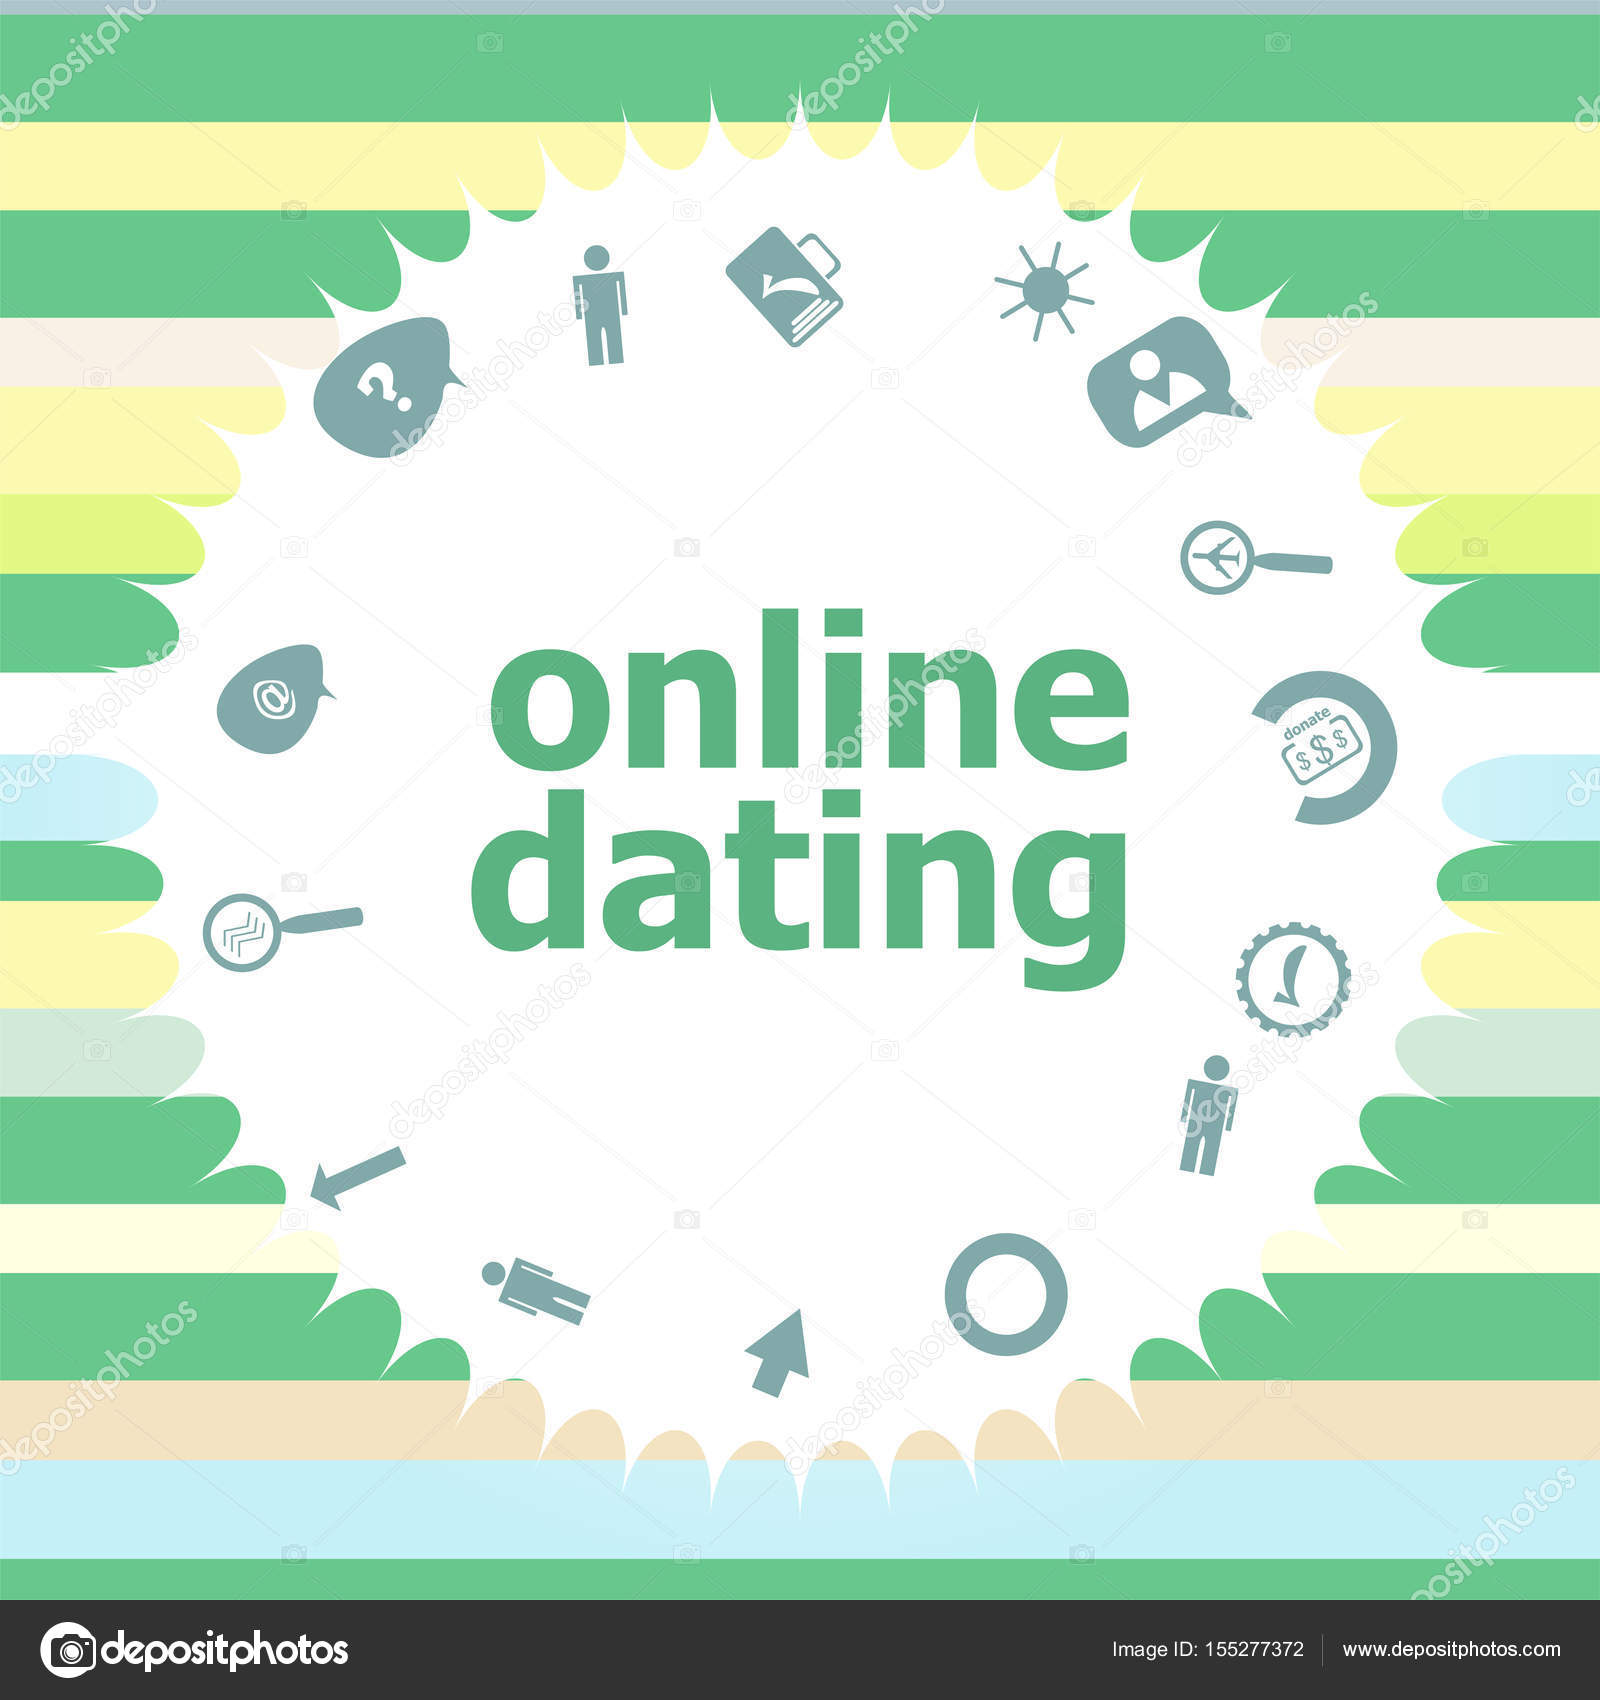 Tekst voor online dating